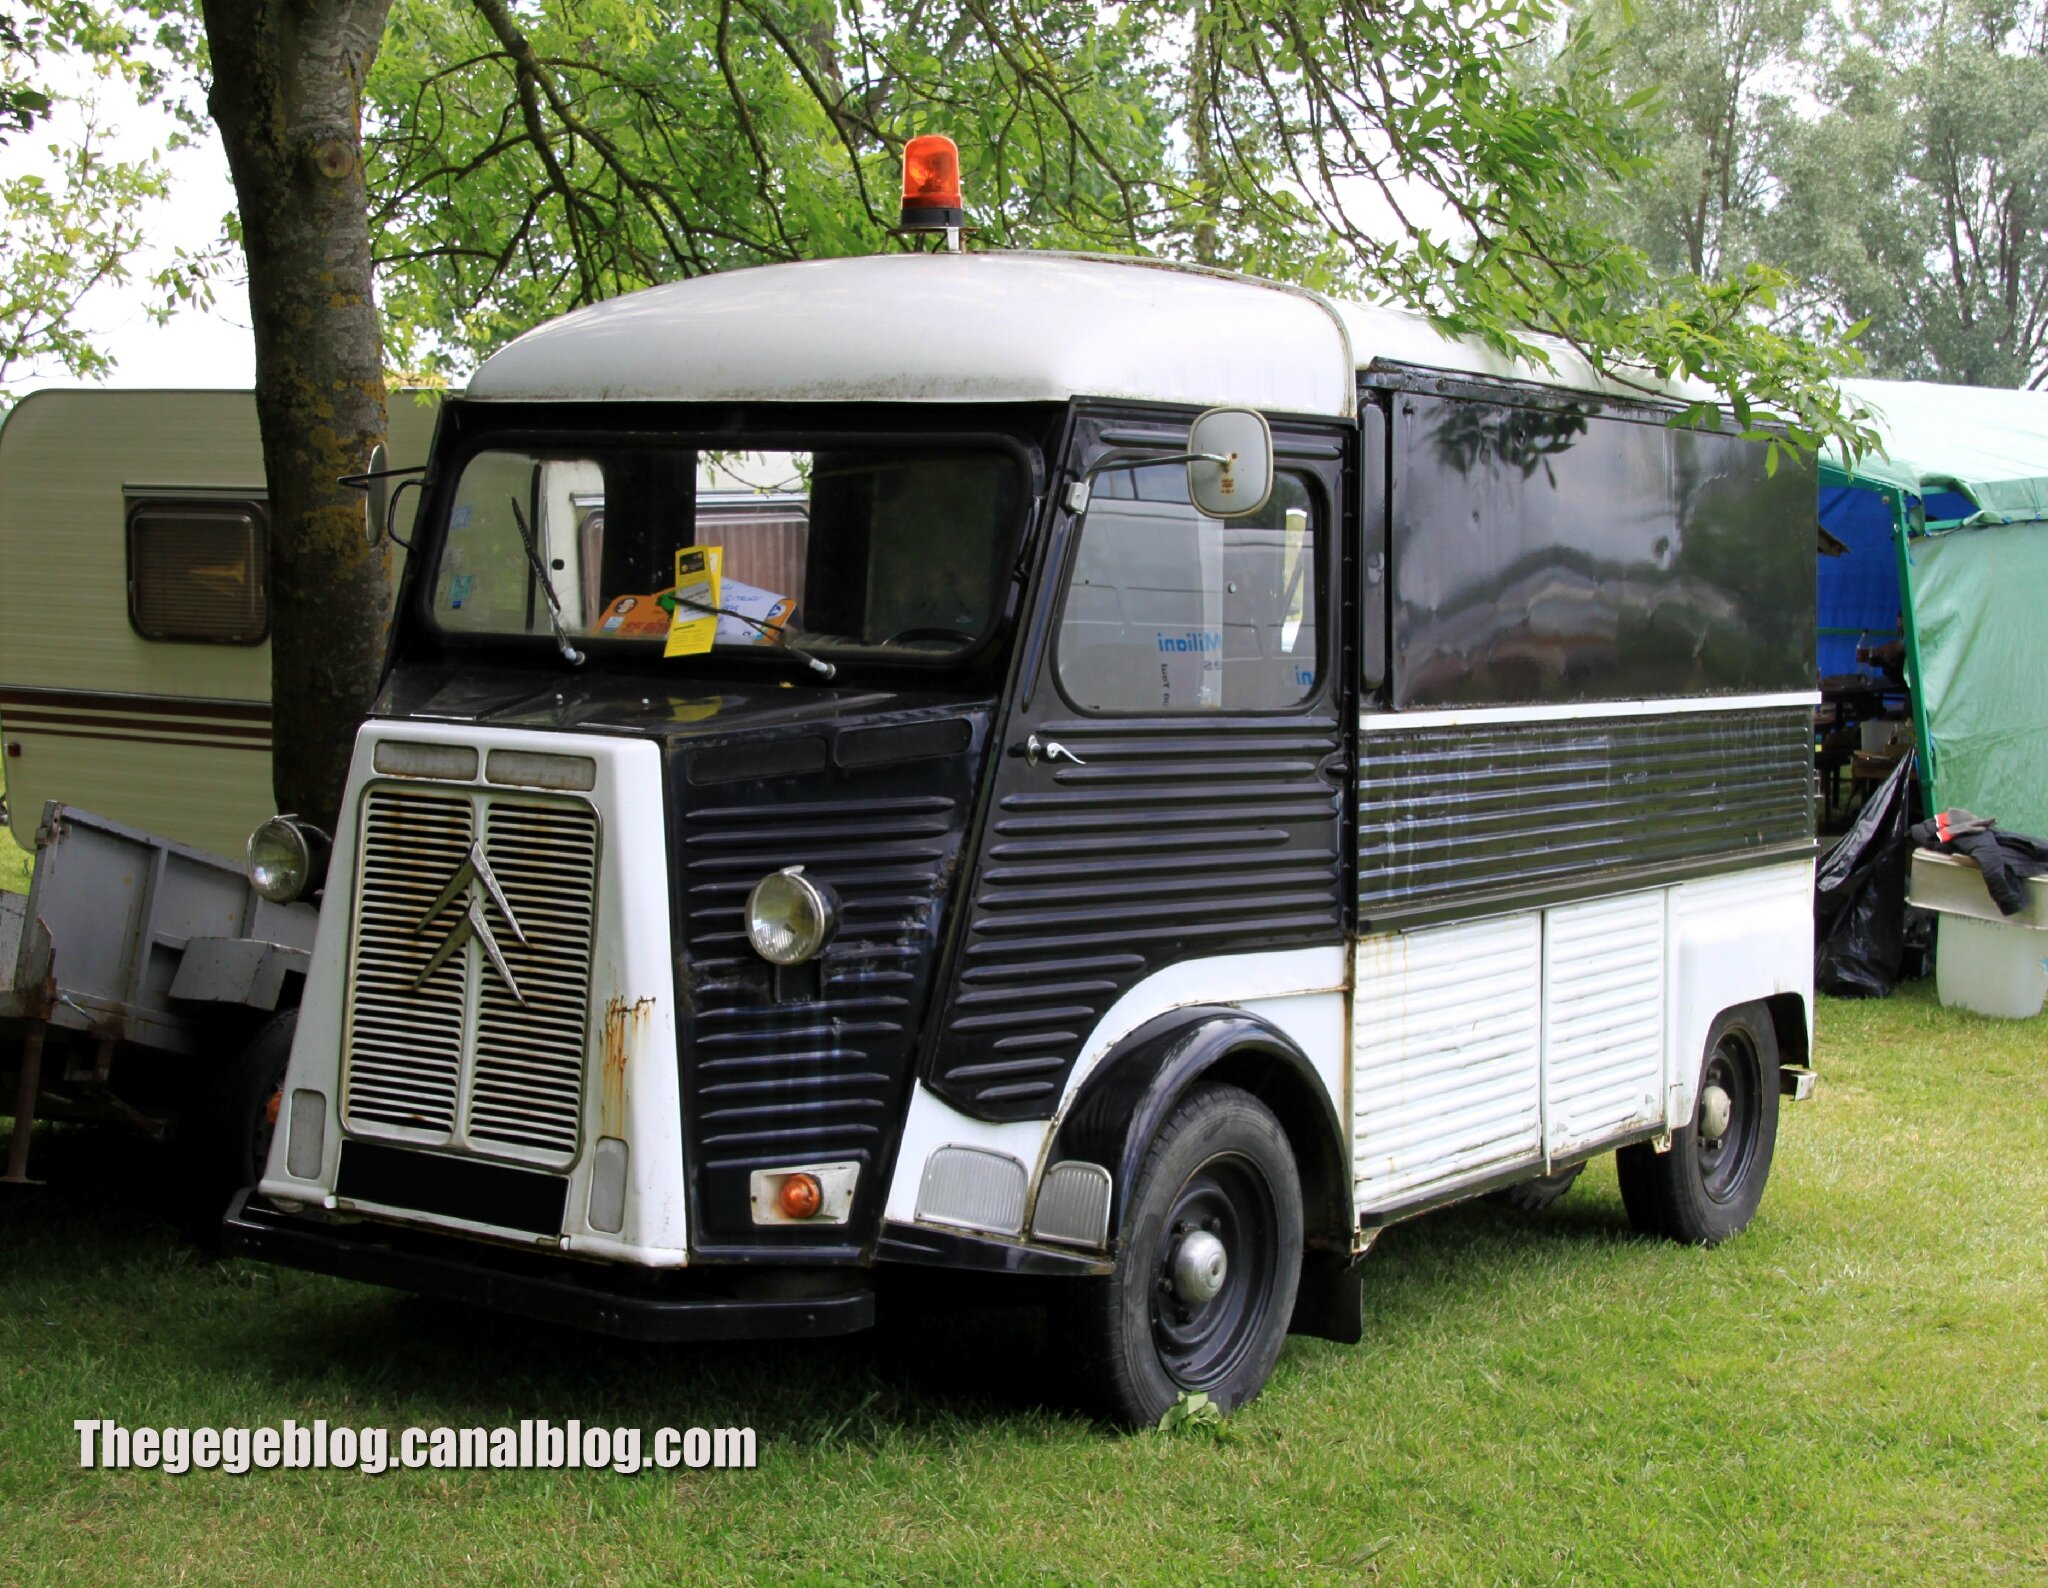 citroen hy fourgon tol de 1979 retro meus auto madine 2012 the g g blog. Black Bedroom Furniture Sets. Home Design Ideas